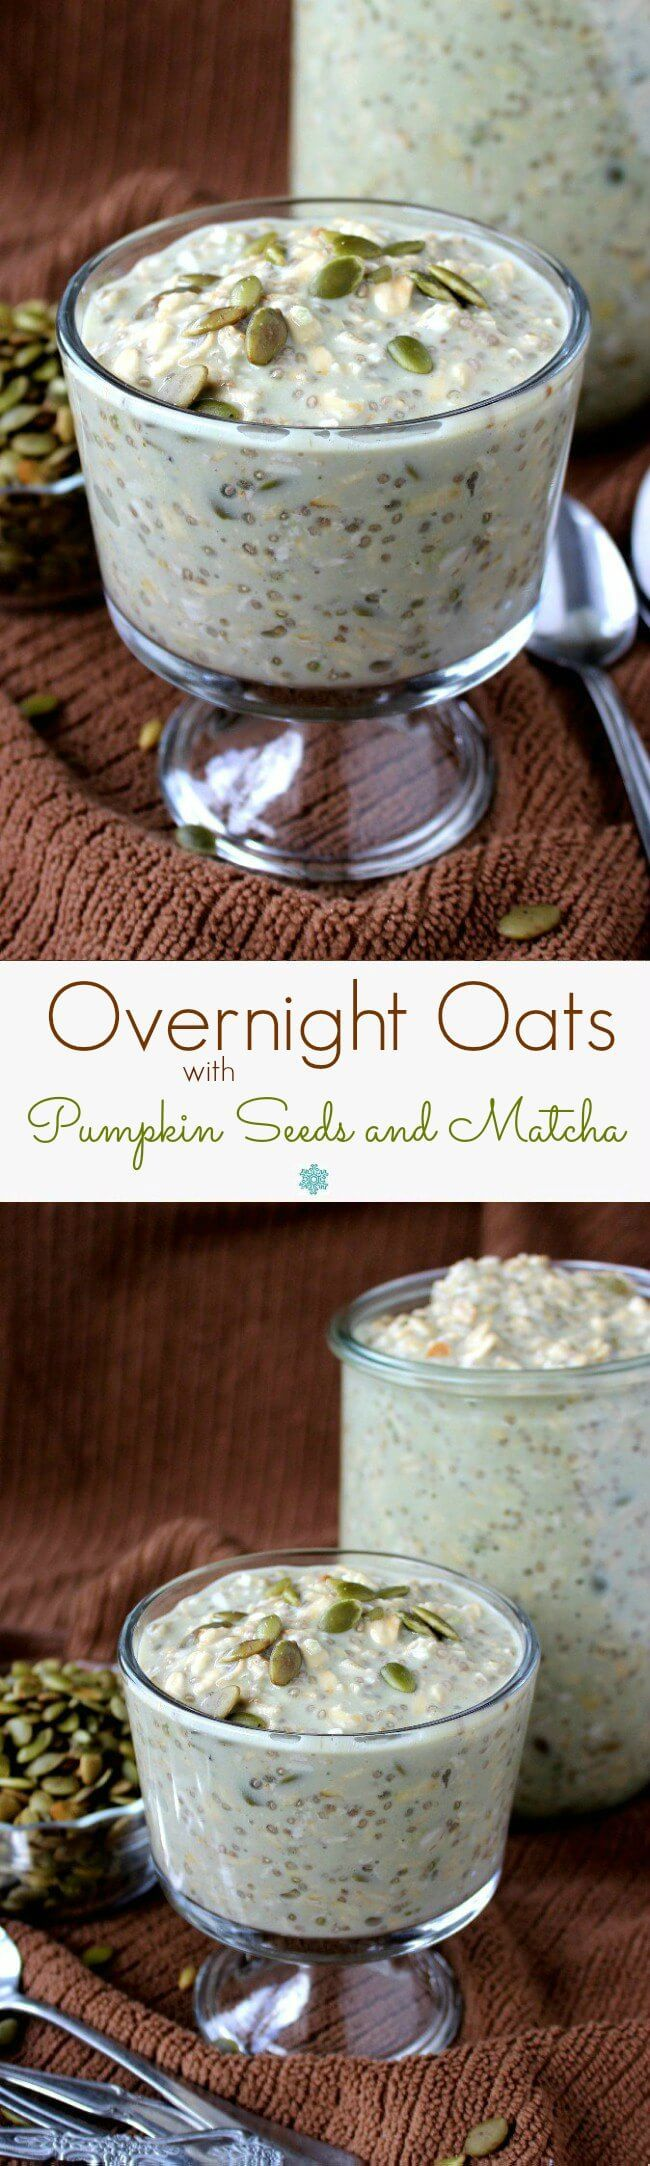 Overnight Oats made with Pumpkin seeds (pepitas), maple syrup and matcha offer the best of all worlds. Fast, delicious, healthy, beautiful and abundant.